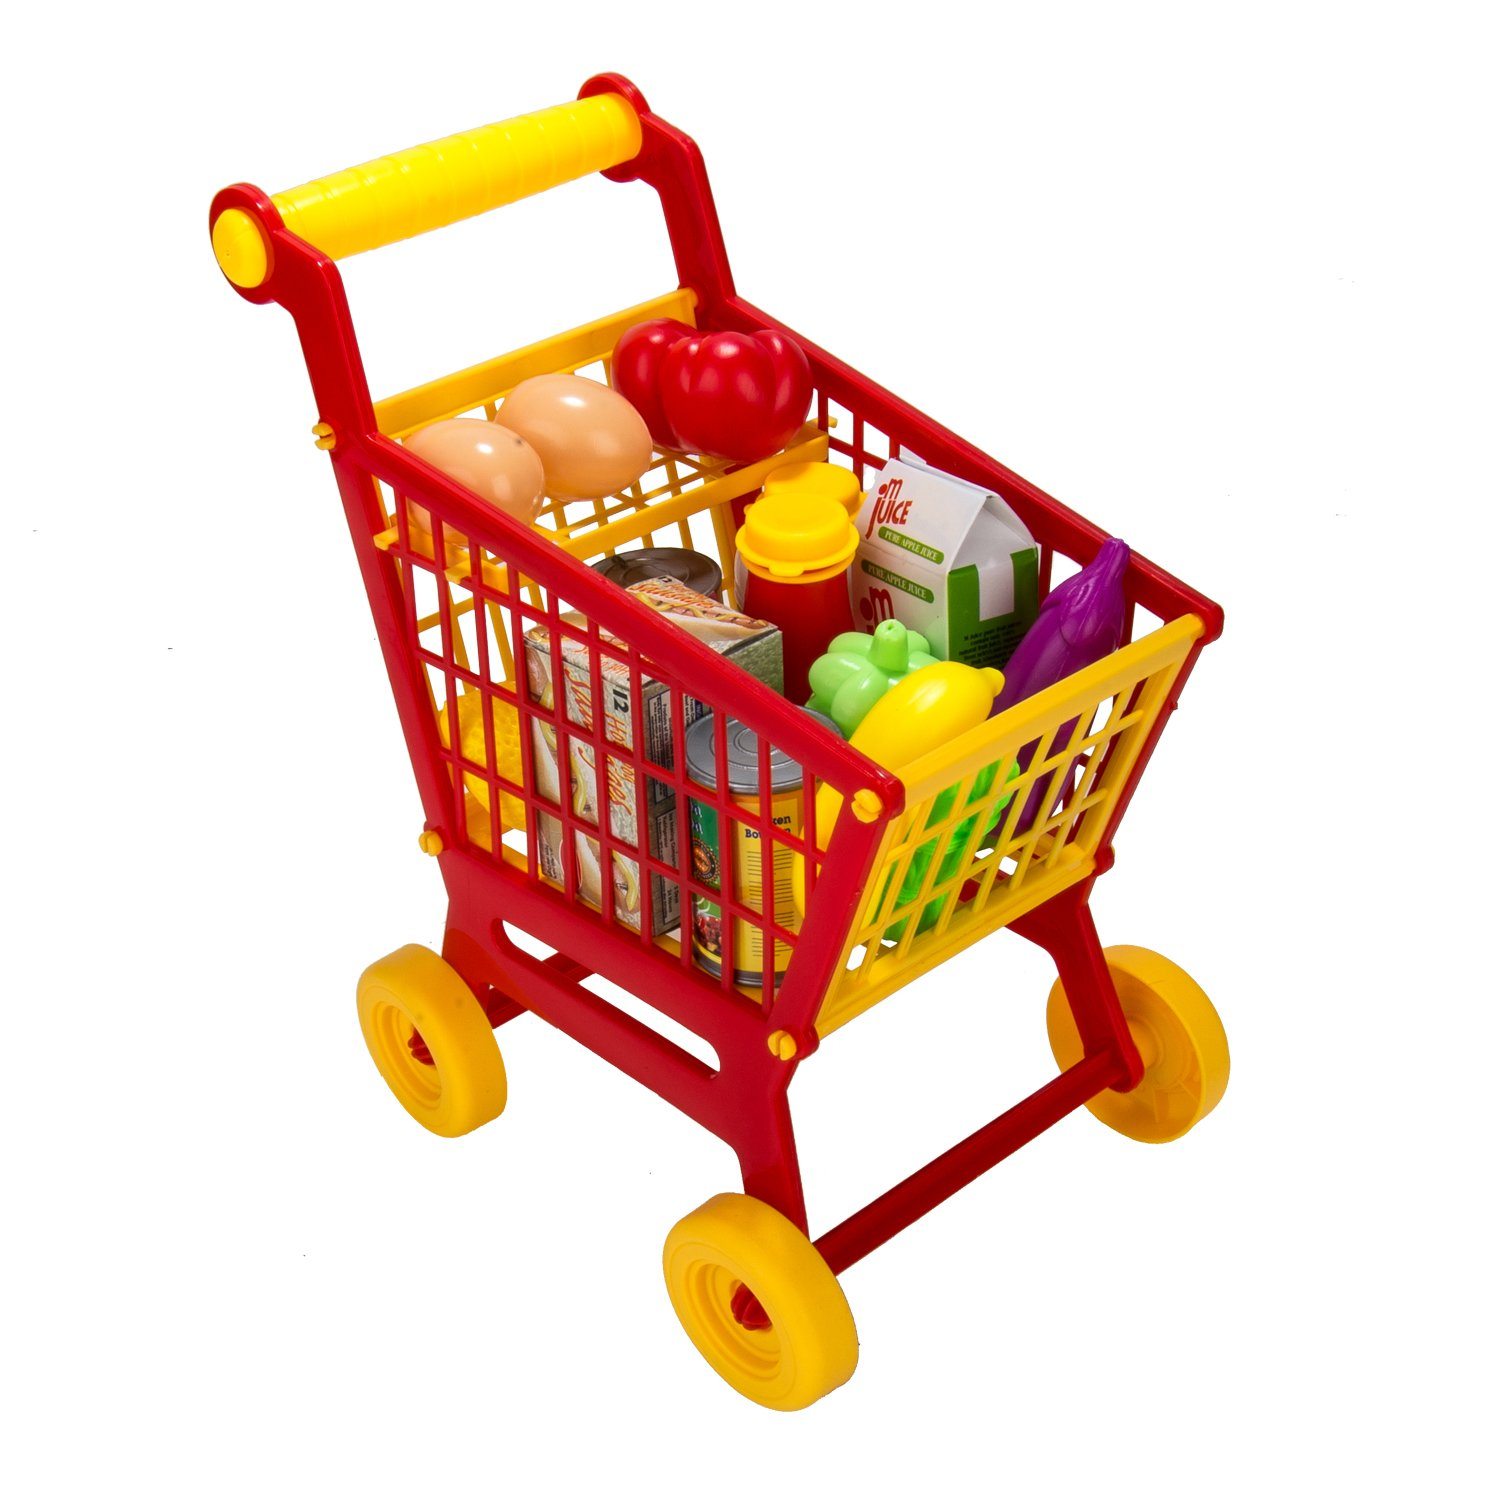 eBigValue Kid's Deluxe Grocery Store Pretend Play Shopping Cart (Red)